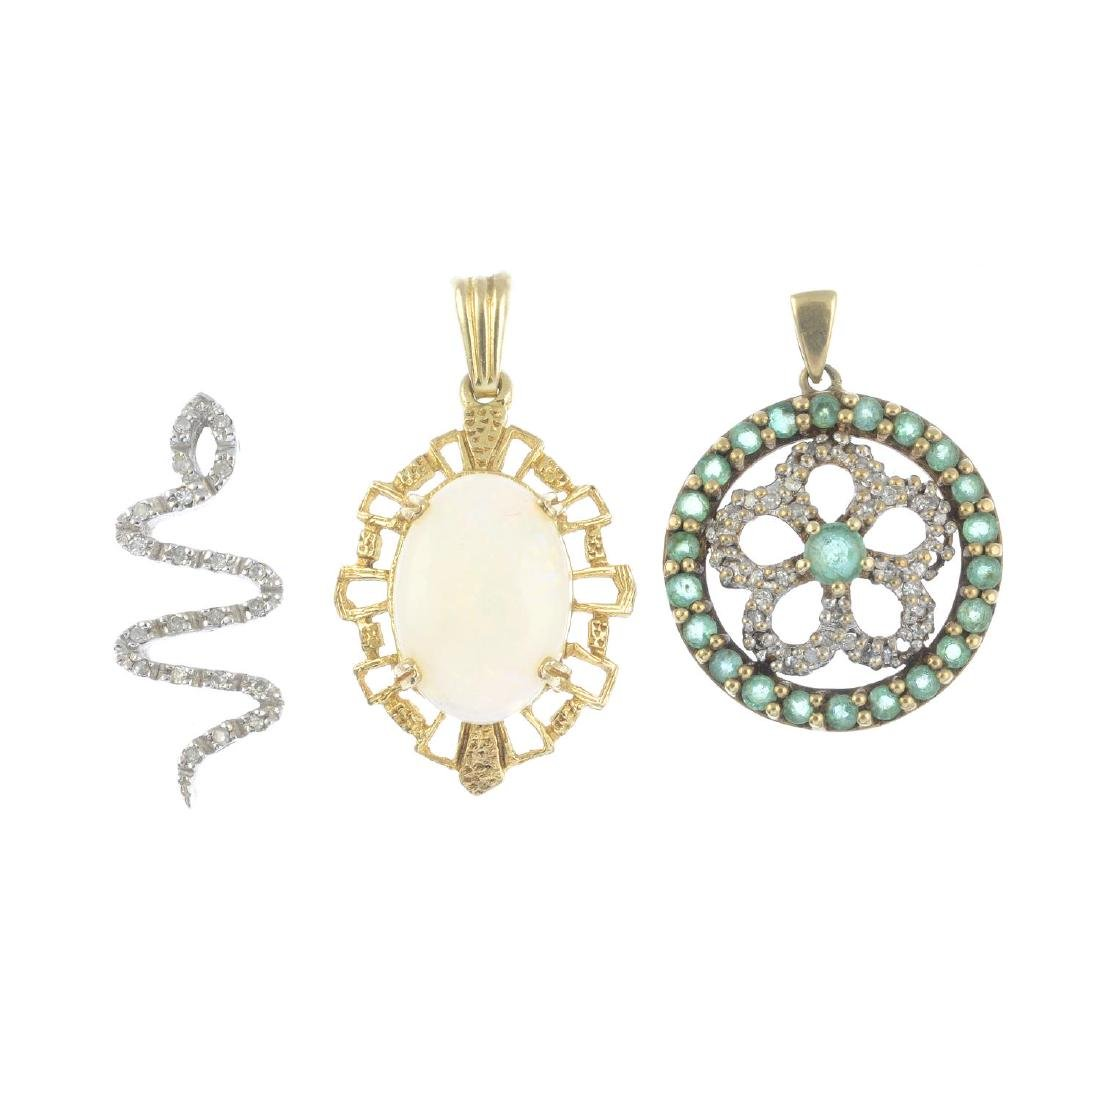 A selection of gem-set jewellery. To include a 9ct gold